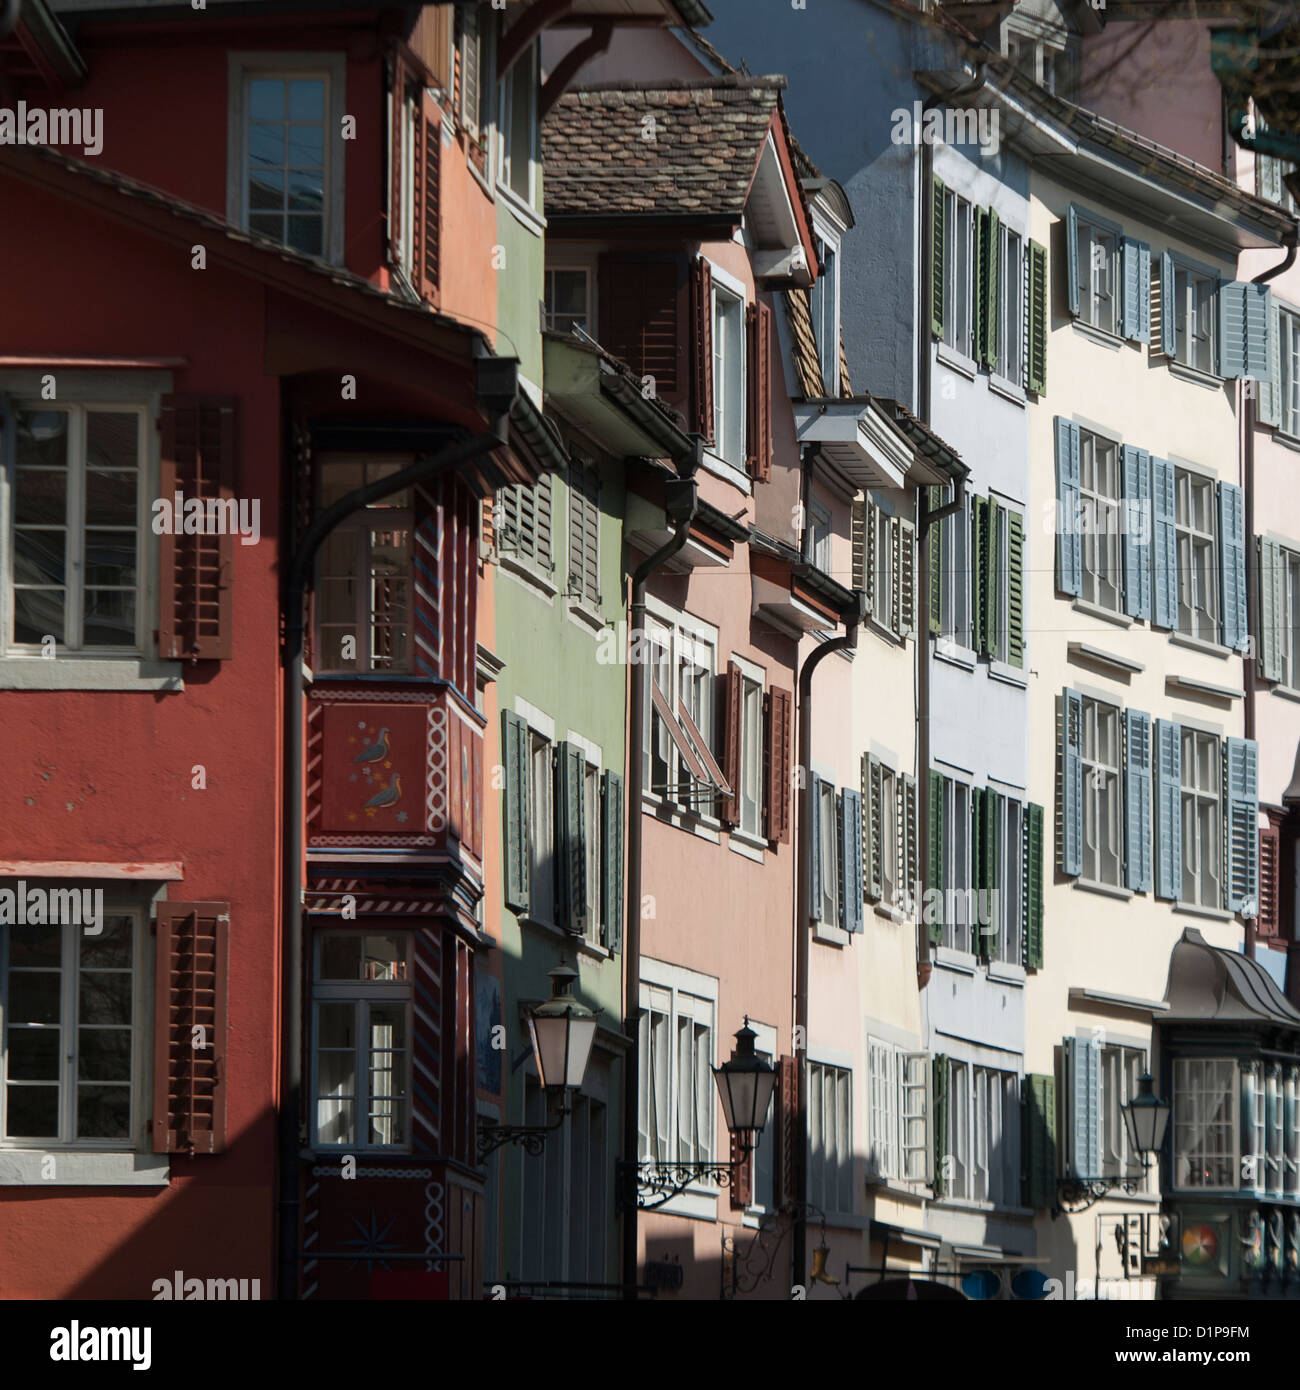 Exterior fa�ade of buildings, Bahnhofstrasse, Zurich, Switzerland - Stock Image